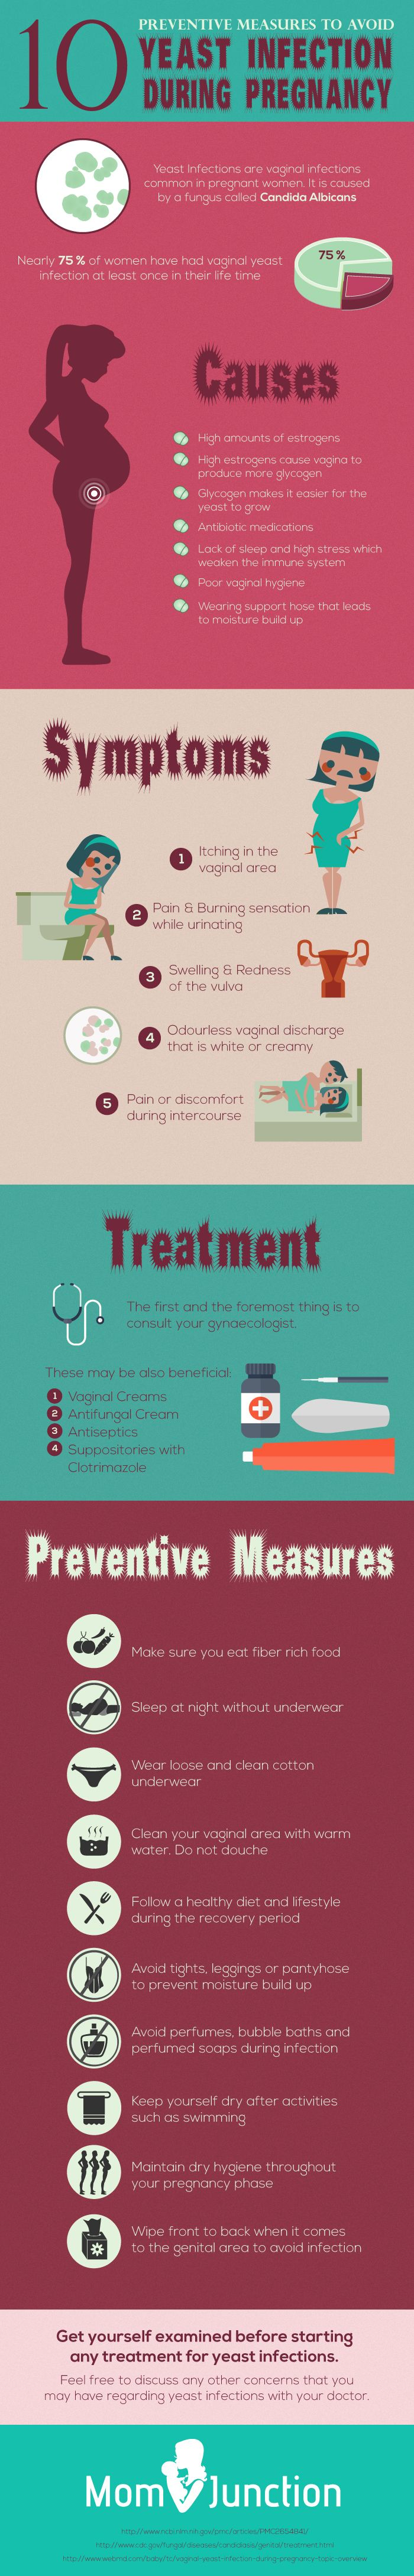 Yeast Infection During Pregnancy: Prevention is better than cure. Making sure of hygiene practices…